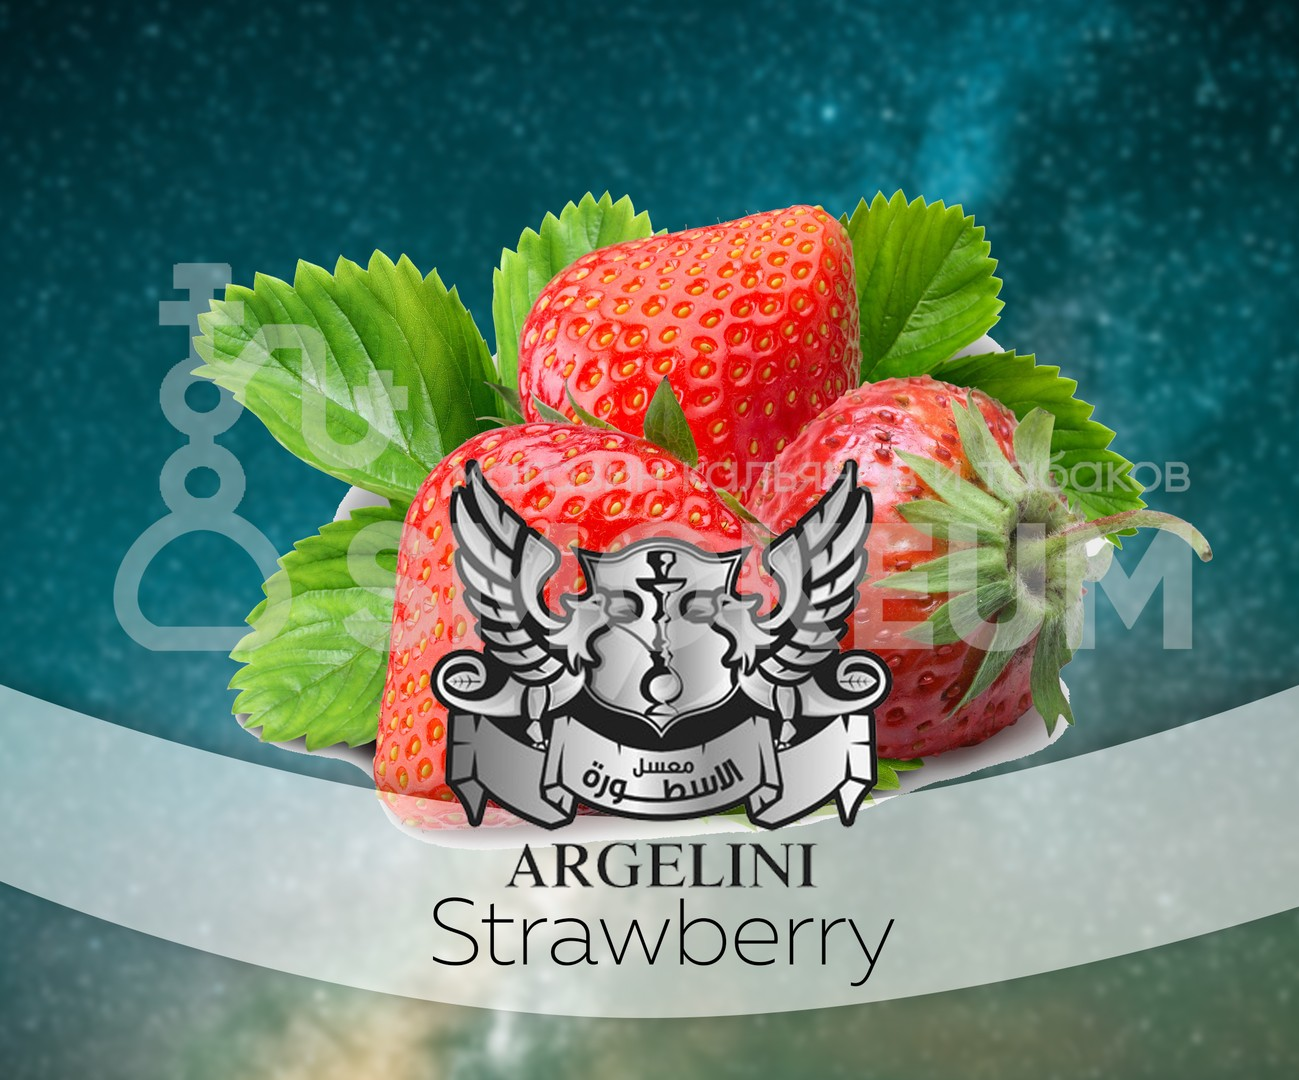 Табак Argelini - Strawberry (Клубника) 50 гр